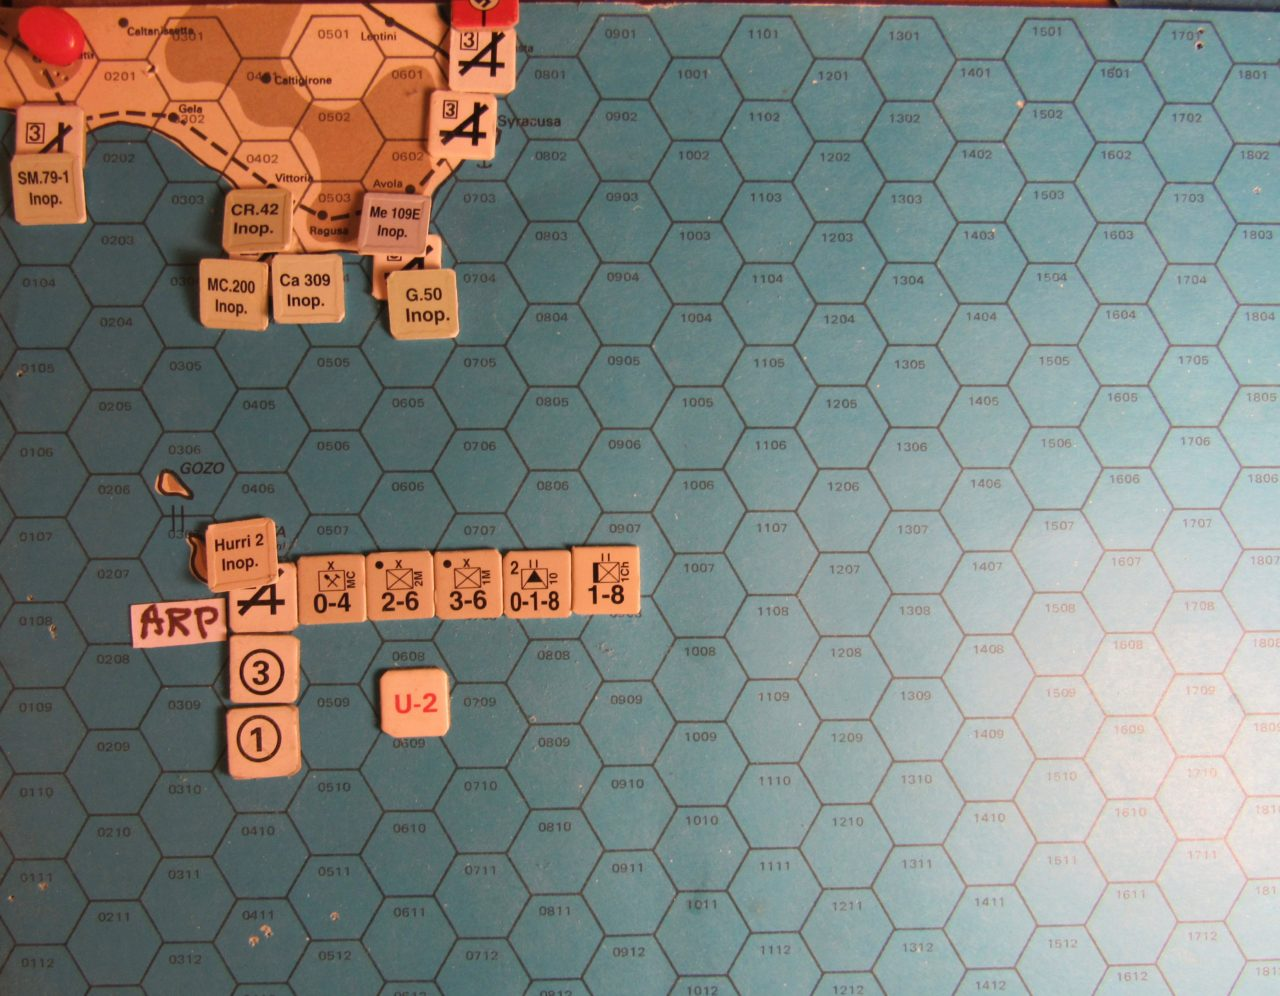 WW ME/ER-II/Crete Scenairo May I 41 Allied EOT dispositions: Malta and Sicily